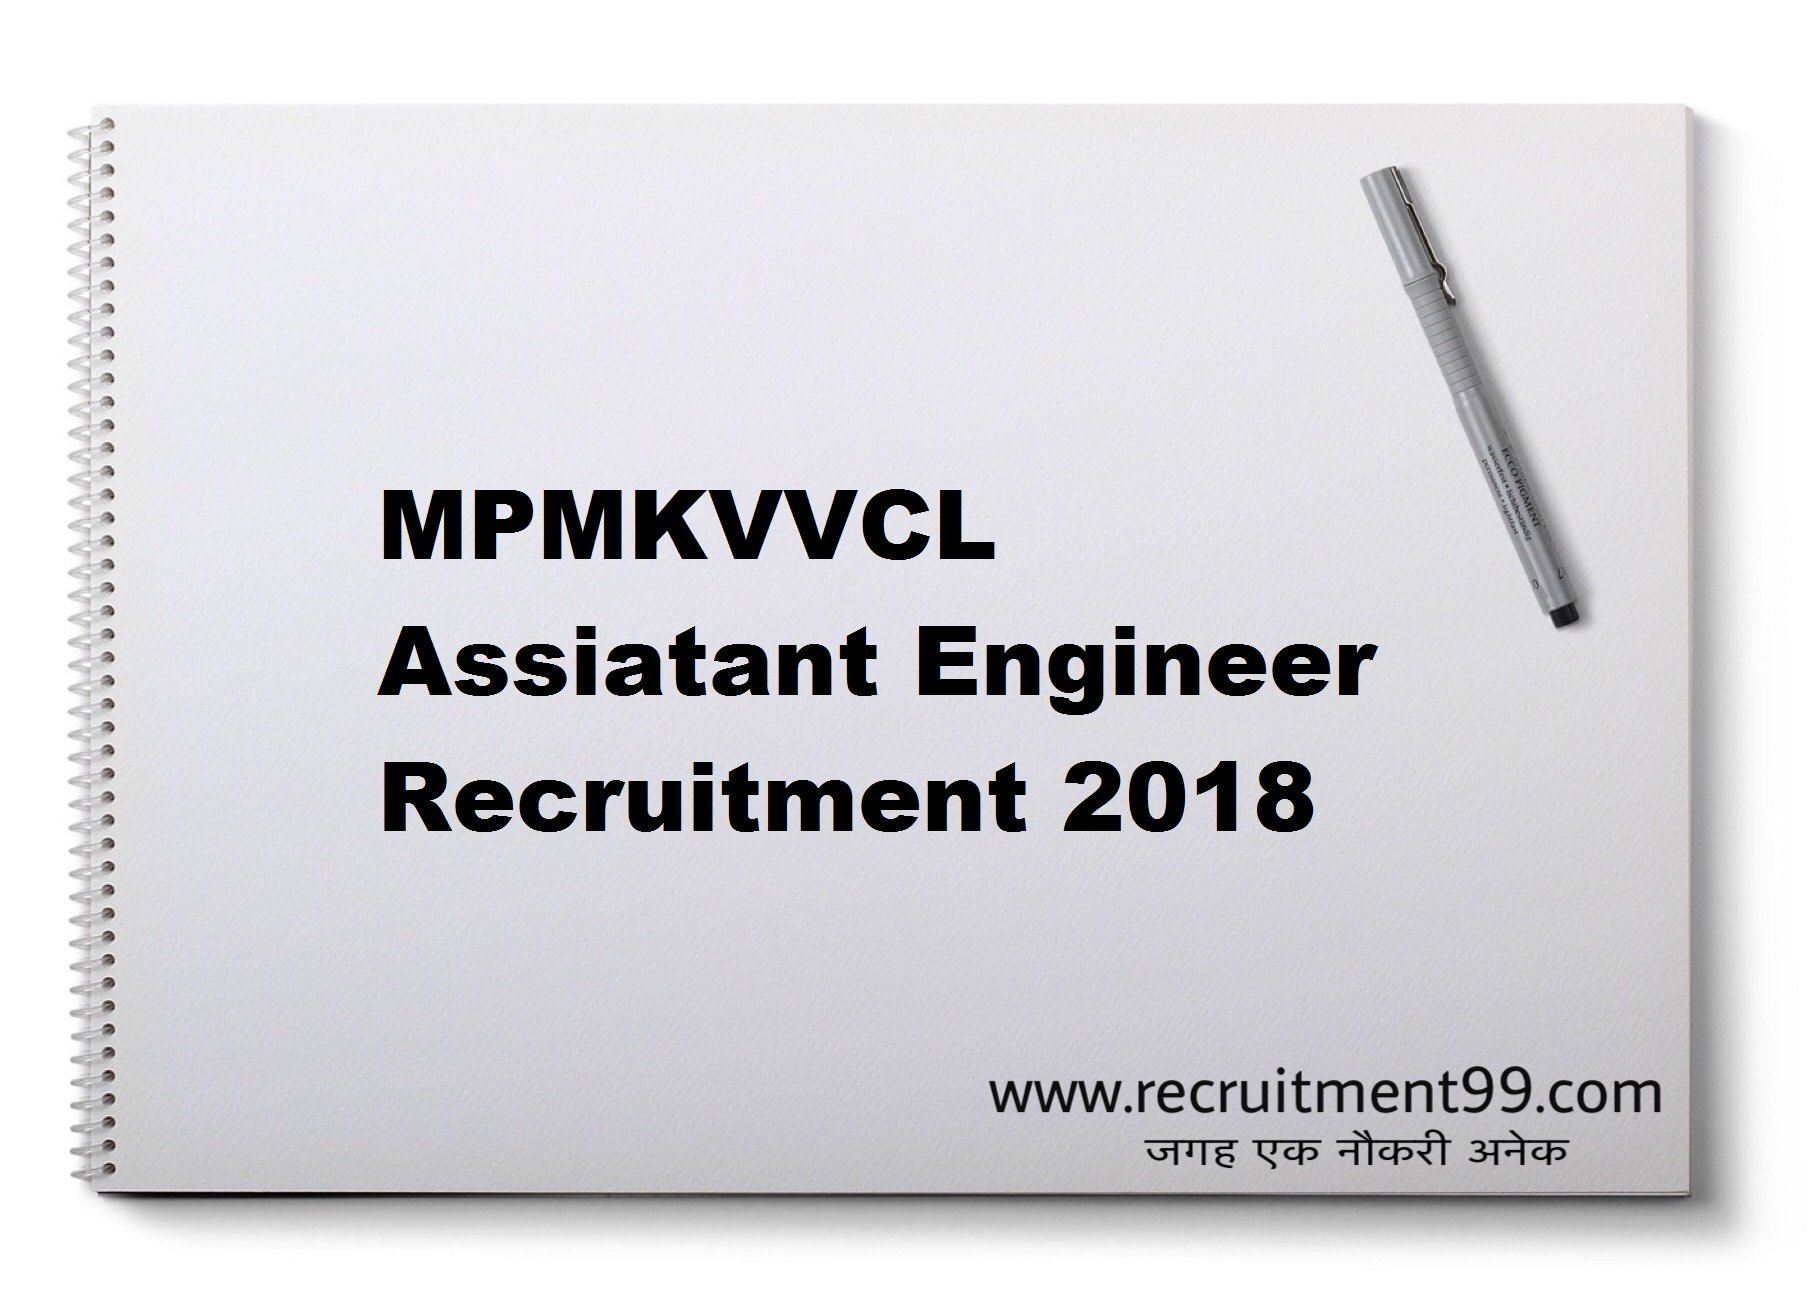 MPMKVVCL Assistant Engineer AEn Recruitment Admit Card Result 2018